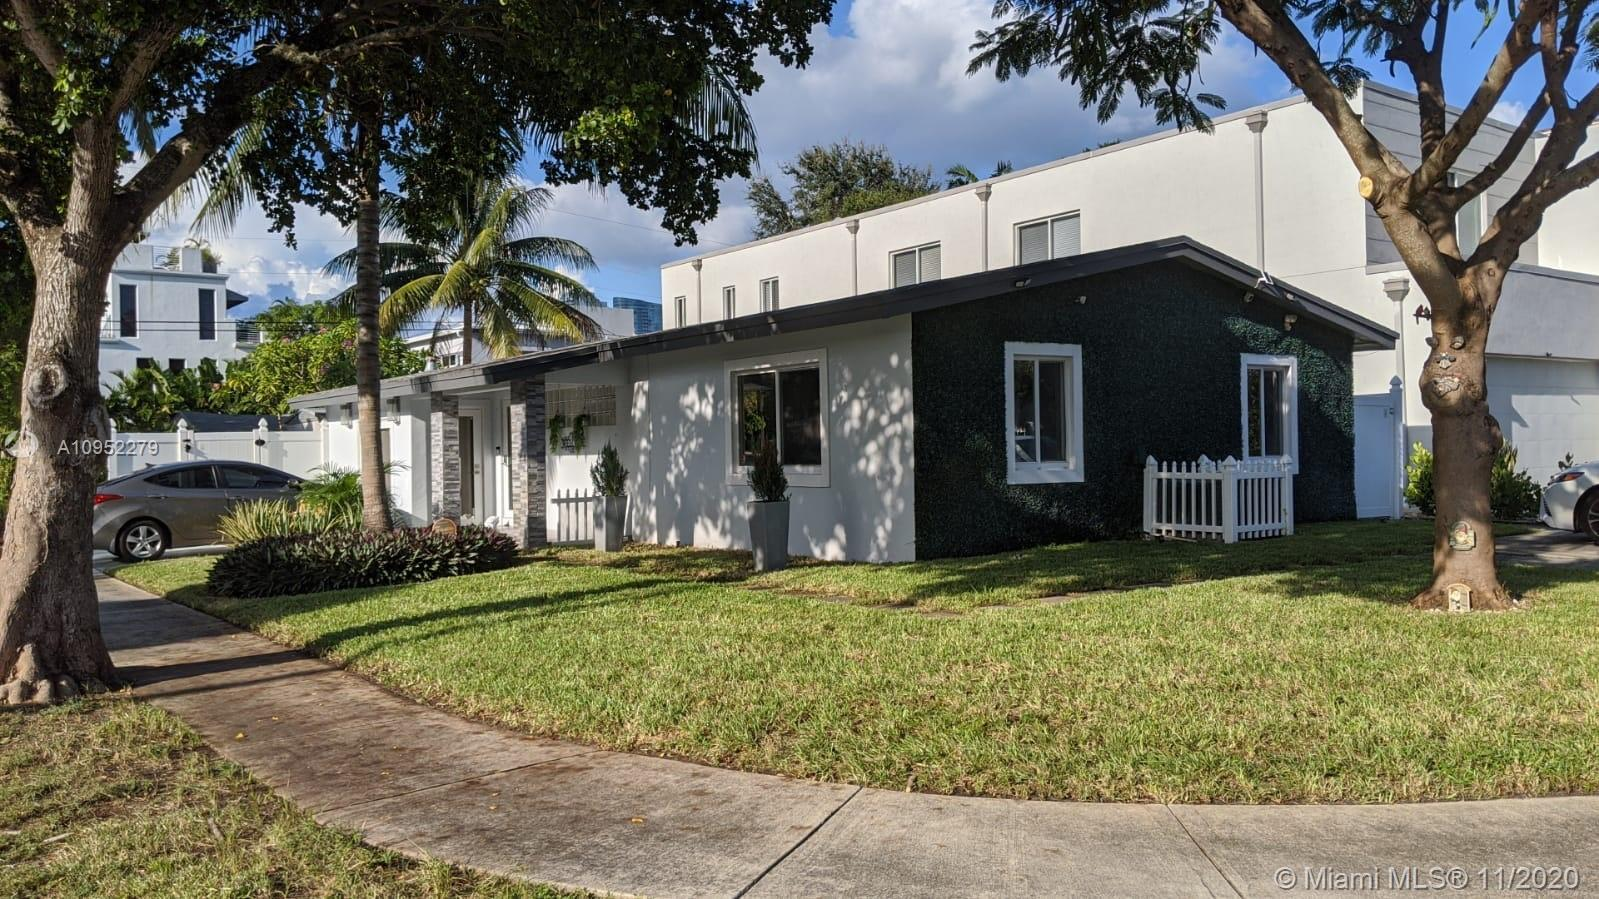 LOCATION, LOCATION. This 3/2 Single Family Home is placed in RD-15 Residential Single Family and Dup